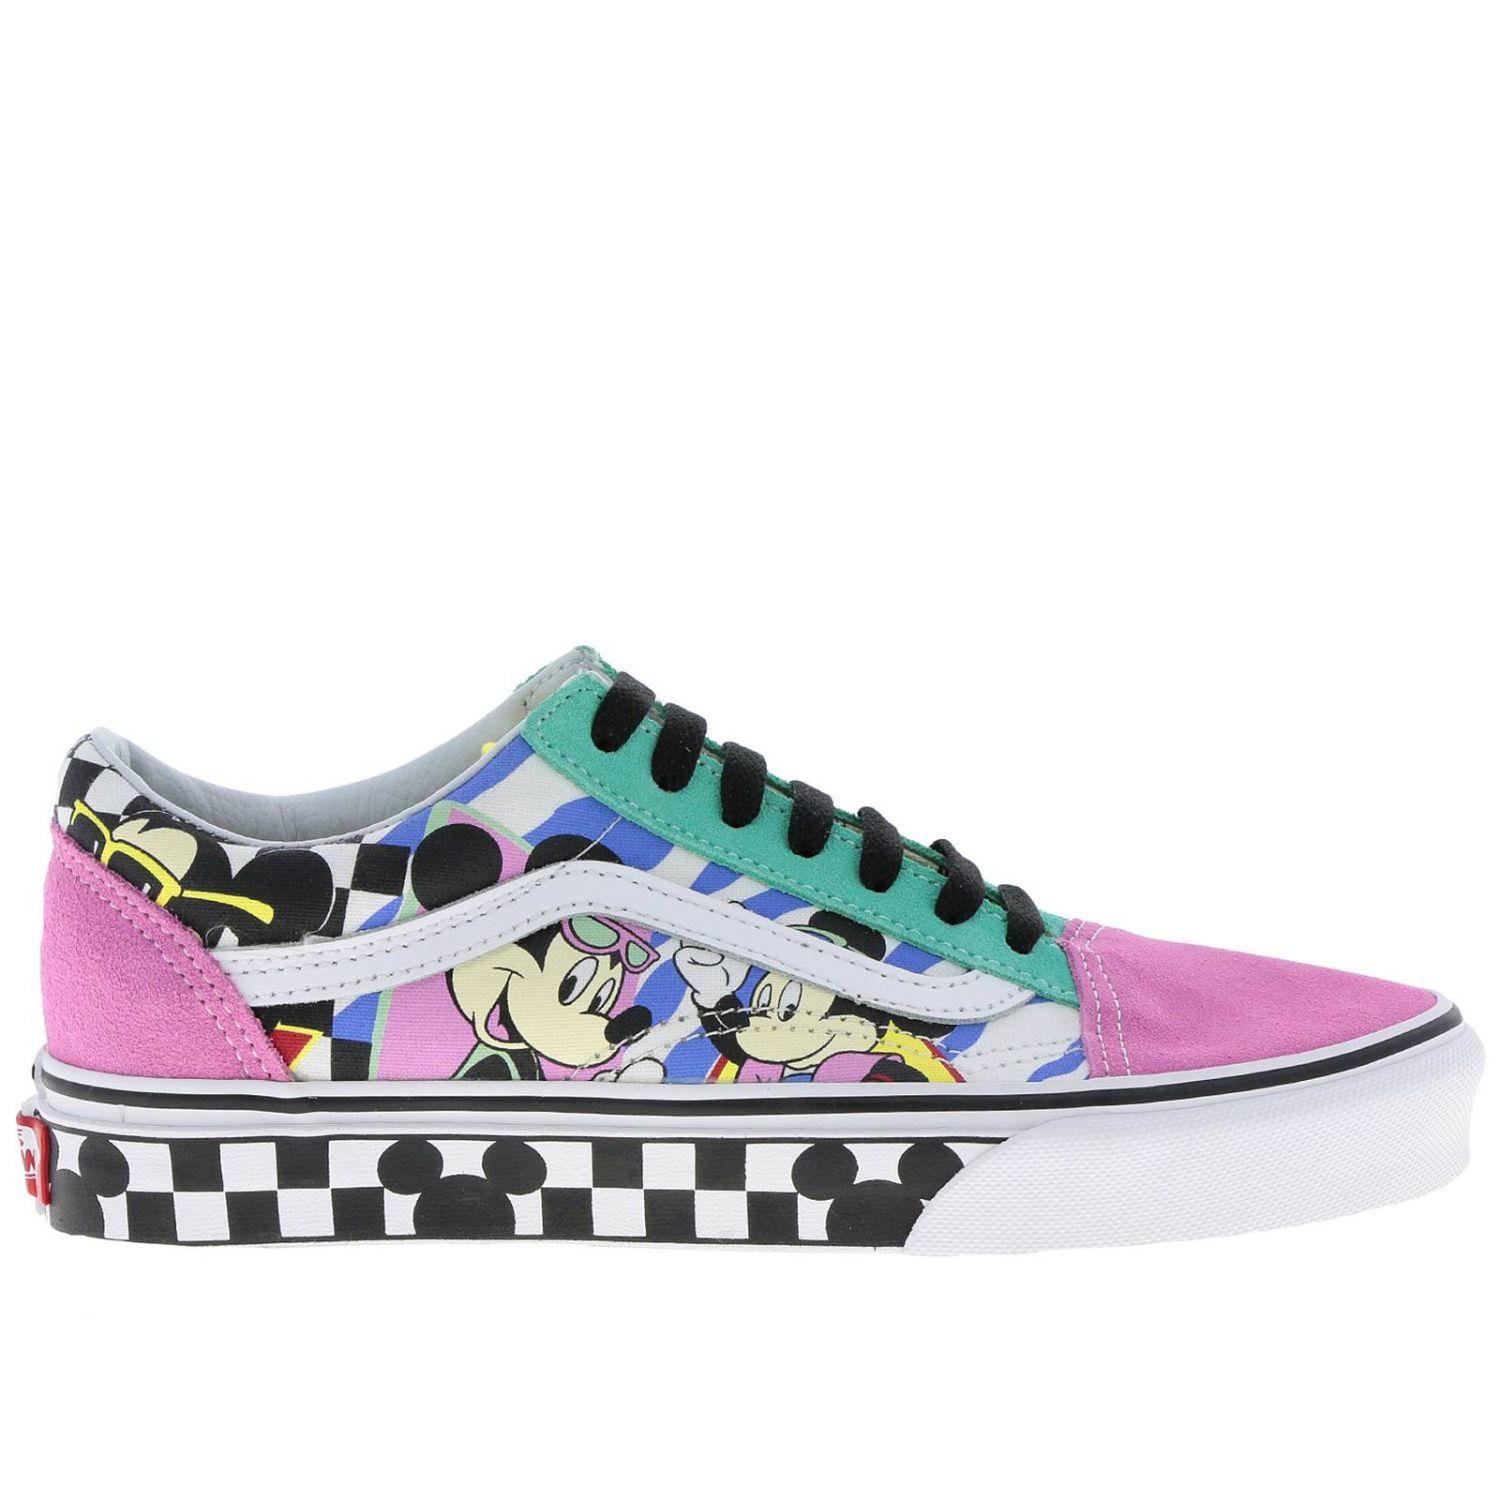 fced45da6d Vans Disney Old Skool Sneakers Dedicated To Mickey Mouse s 90th ...